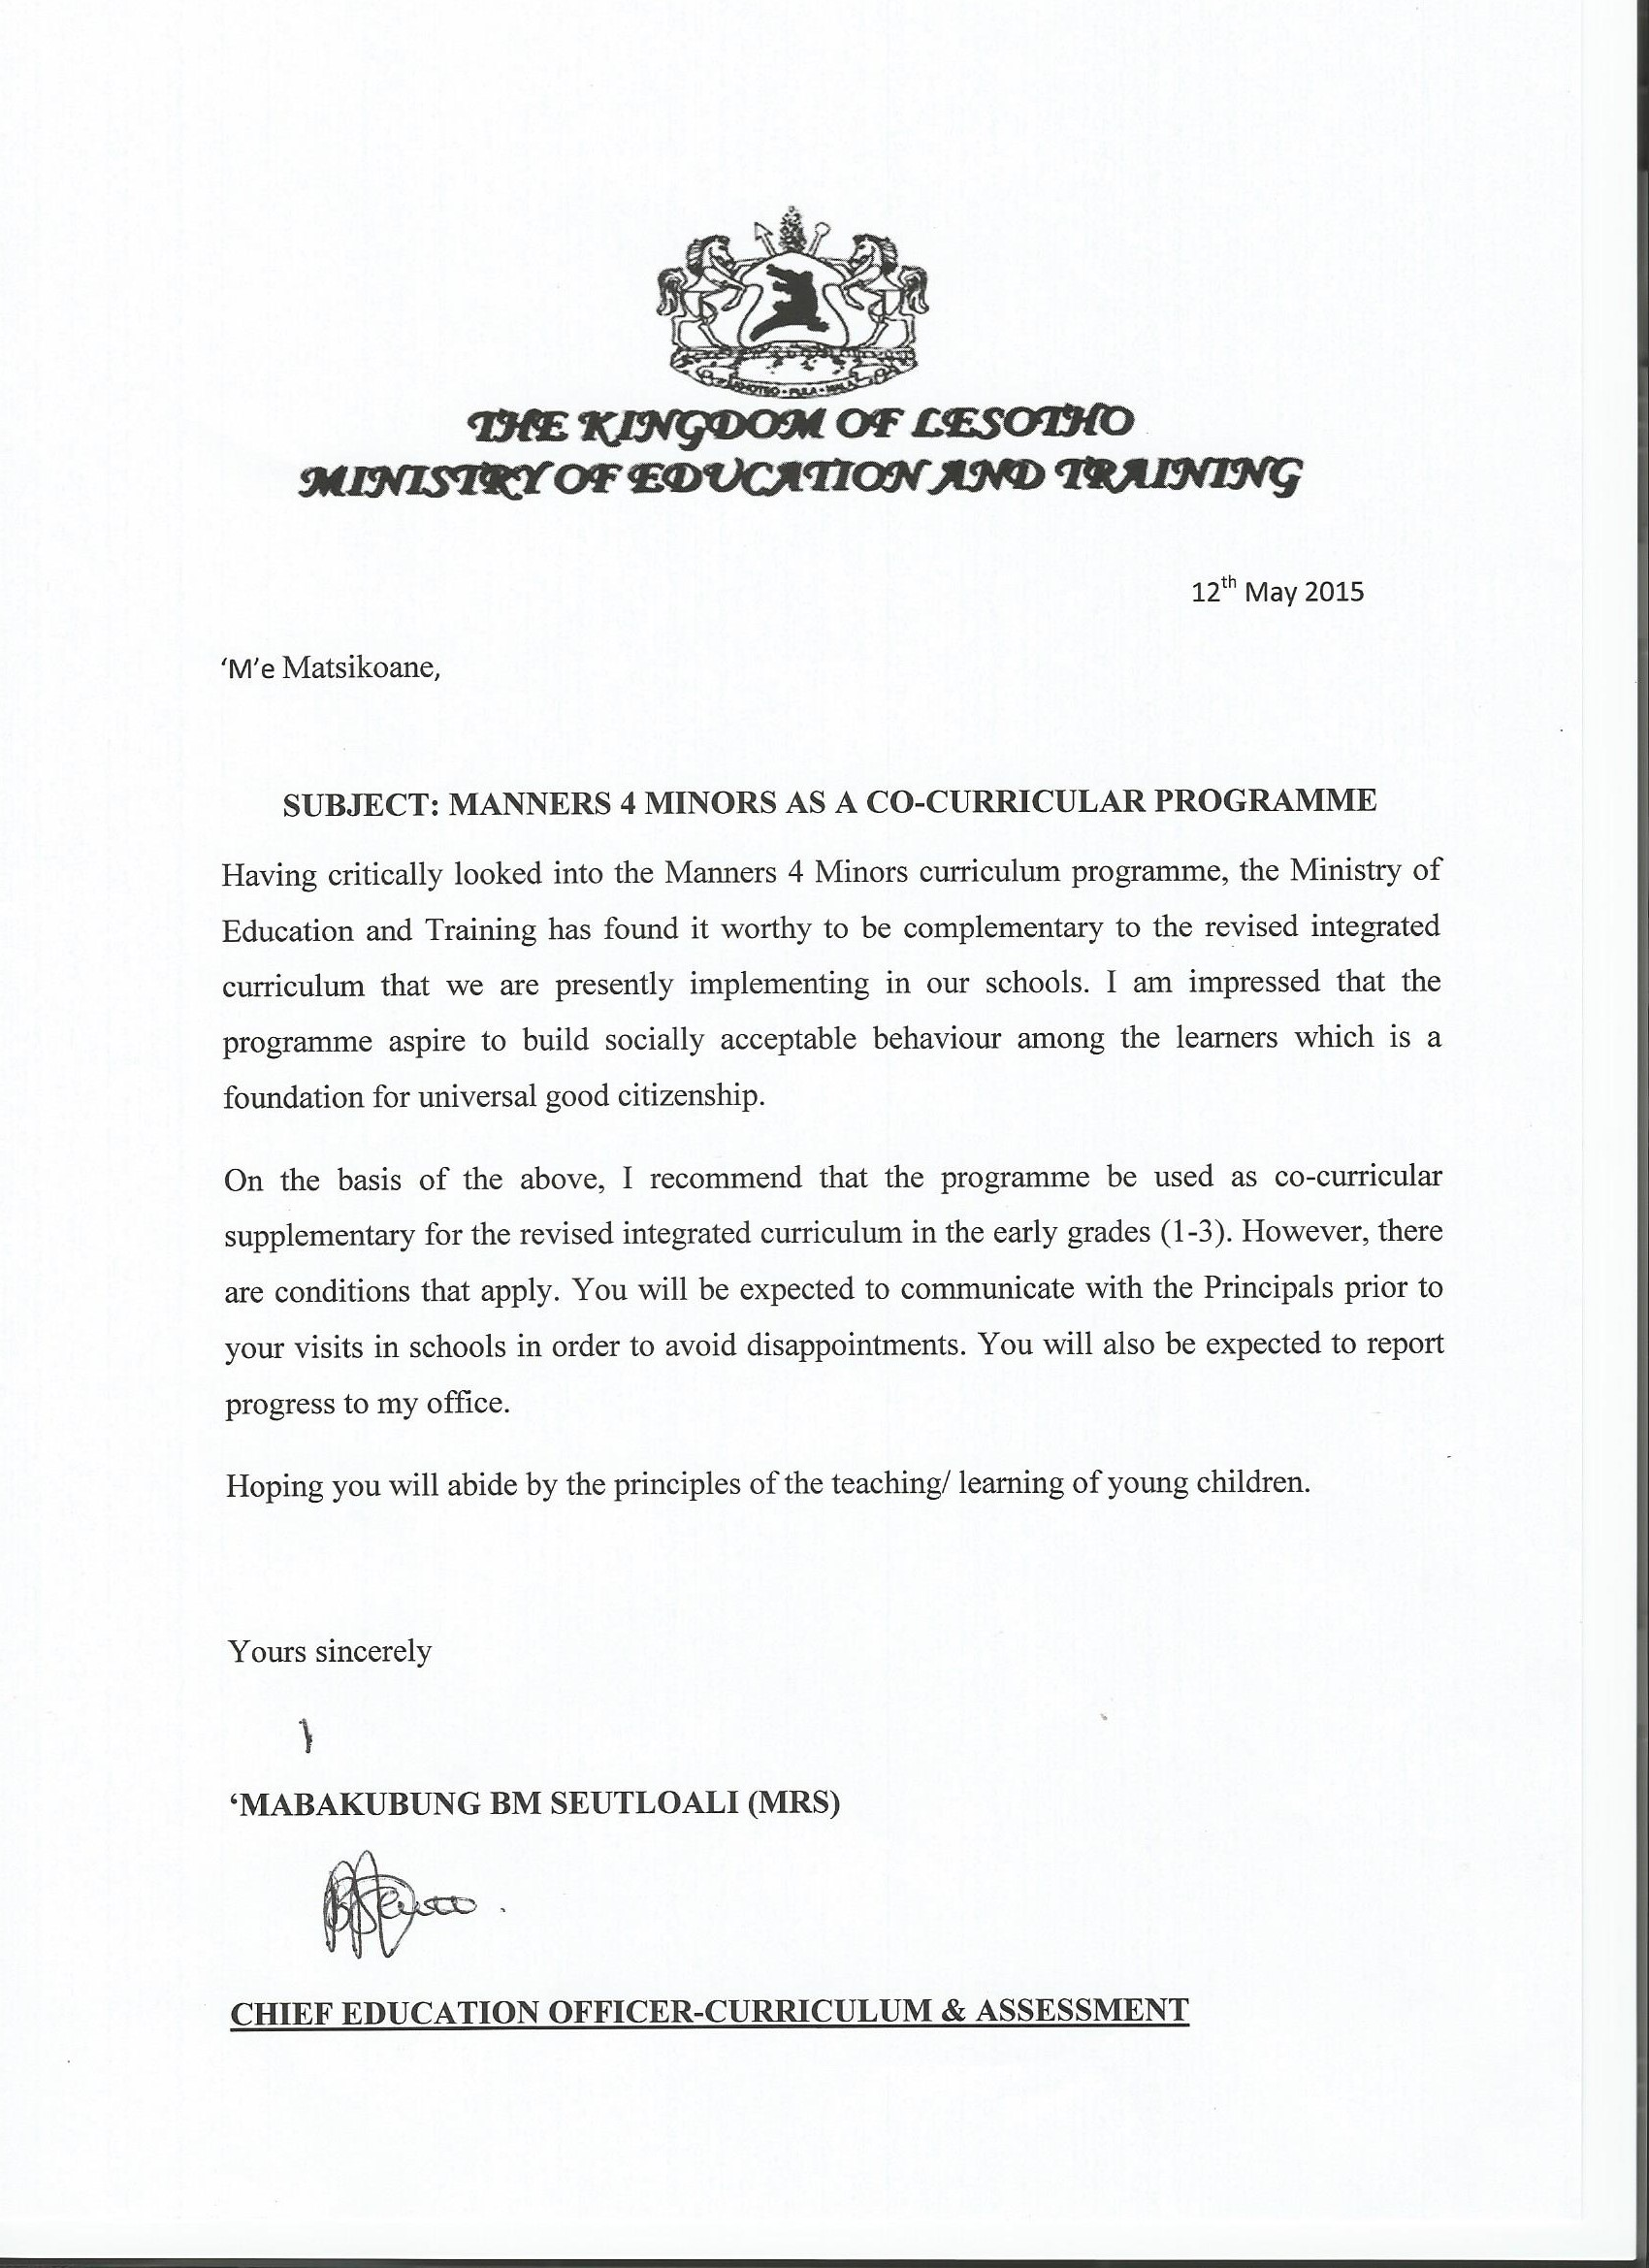 support letters mannersminors letter